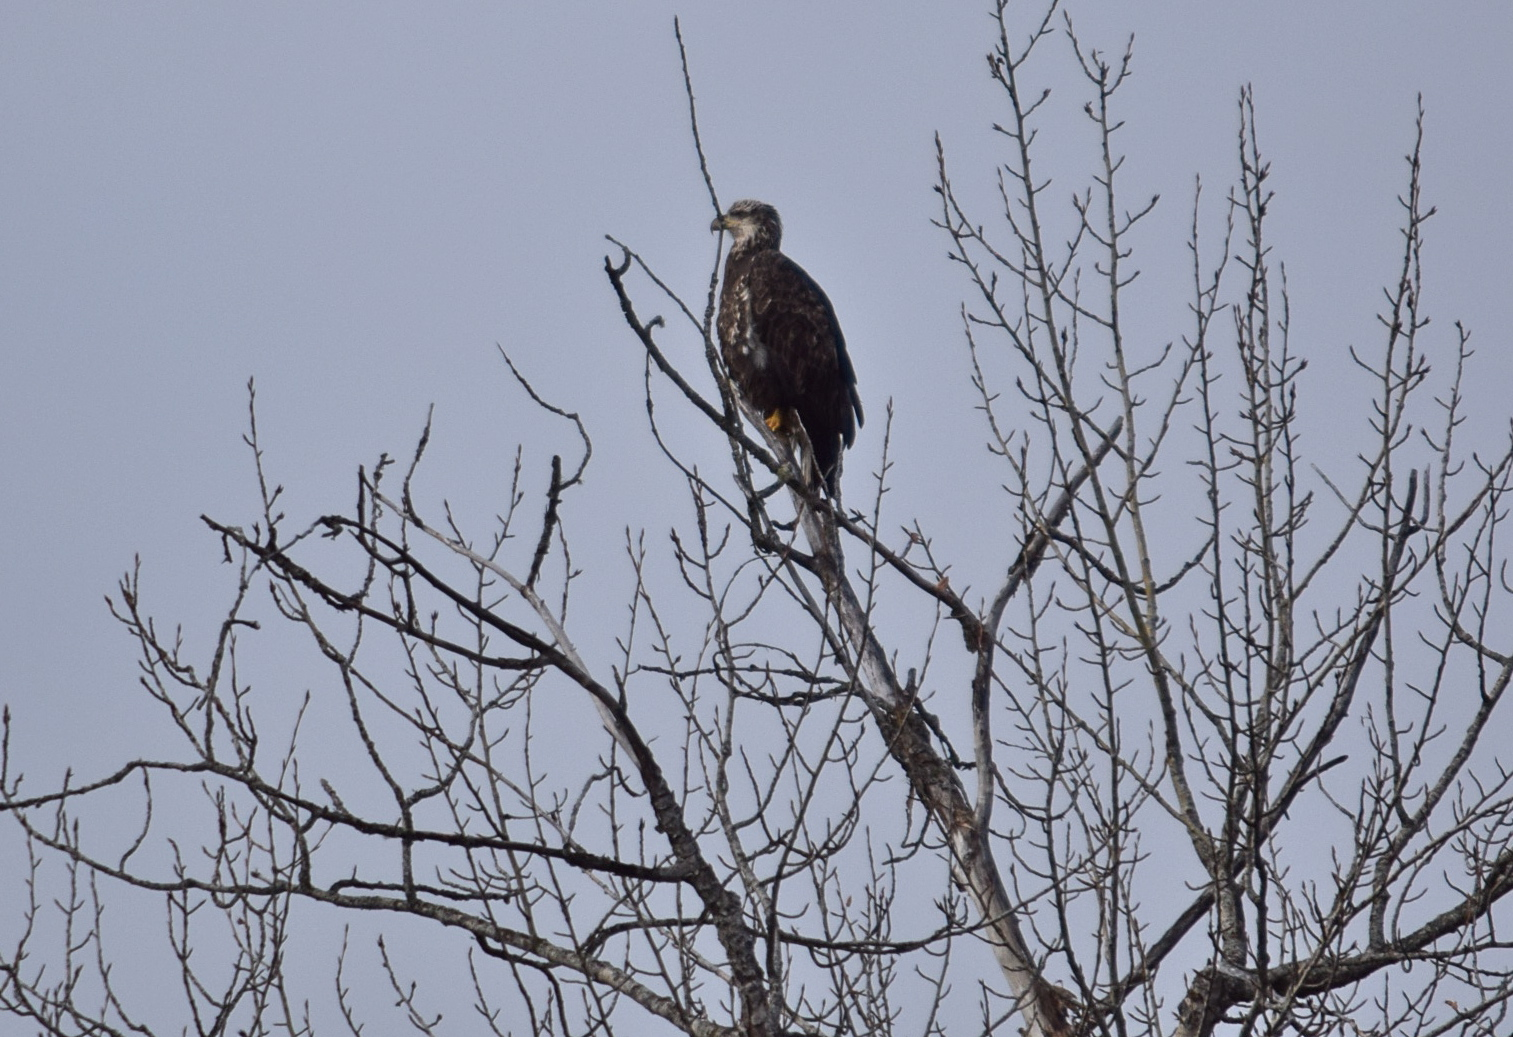 Some kind of bird of prey. Checking out the menu on the river.